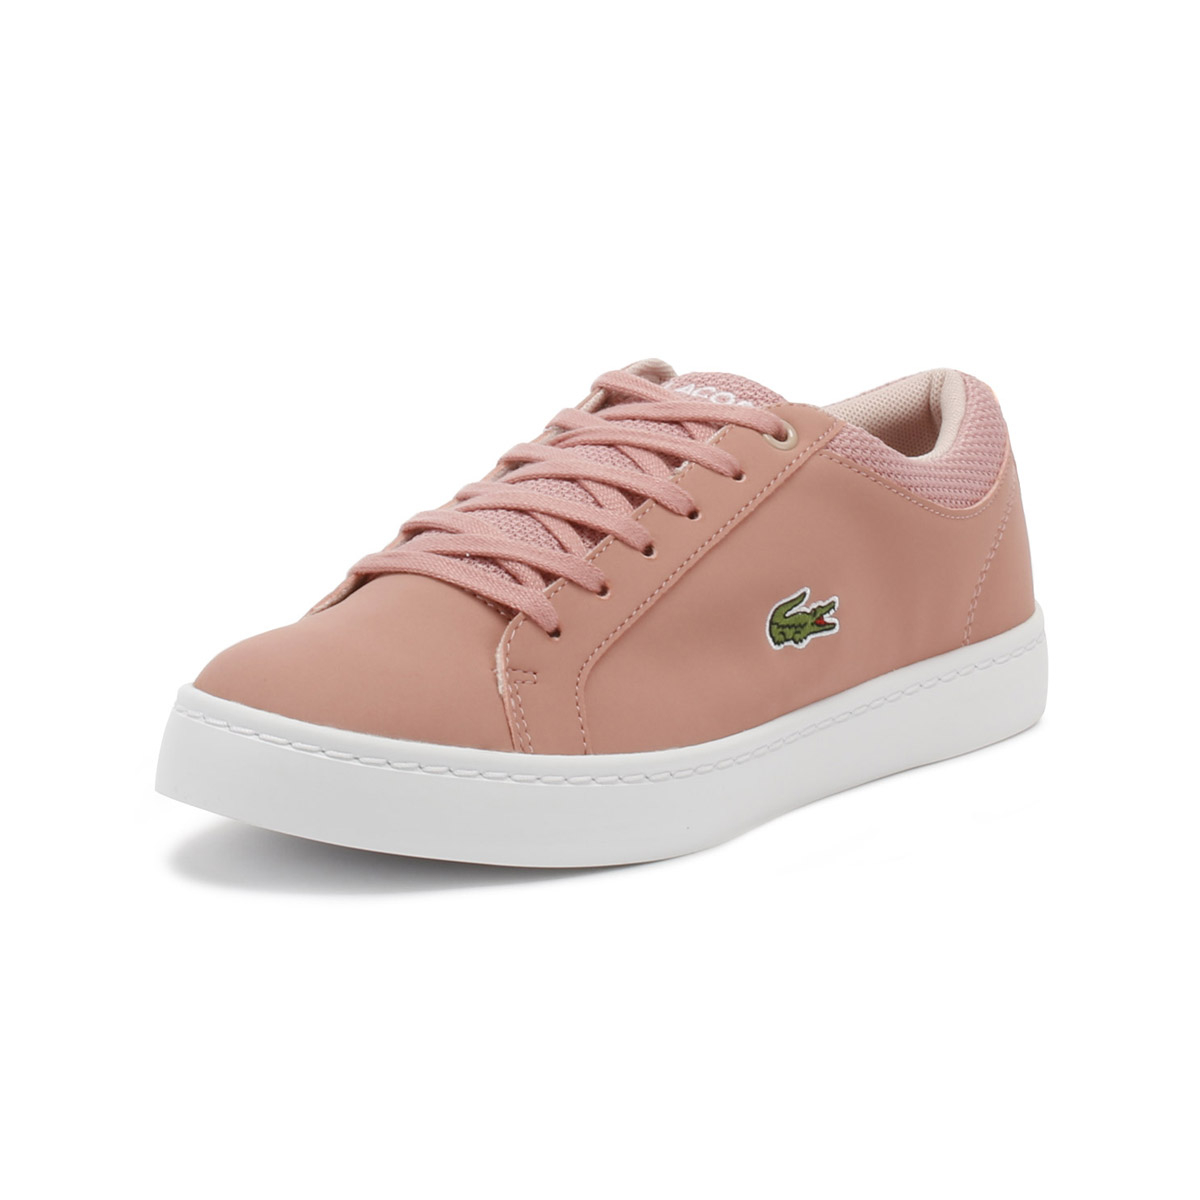 f6021f2eb Details about Lacoste Junior Pink Straightset 318 1 Trainers Kids Sport  Casual Shoes